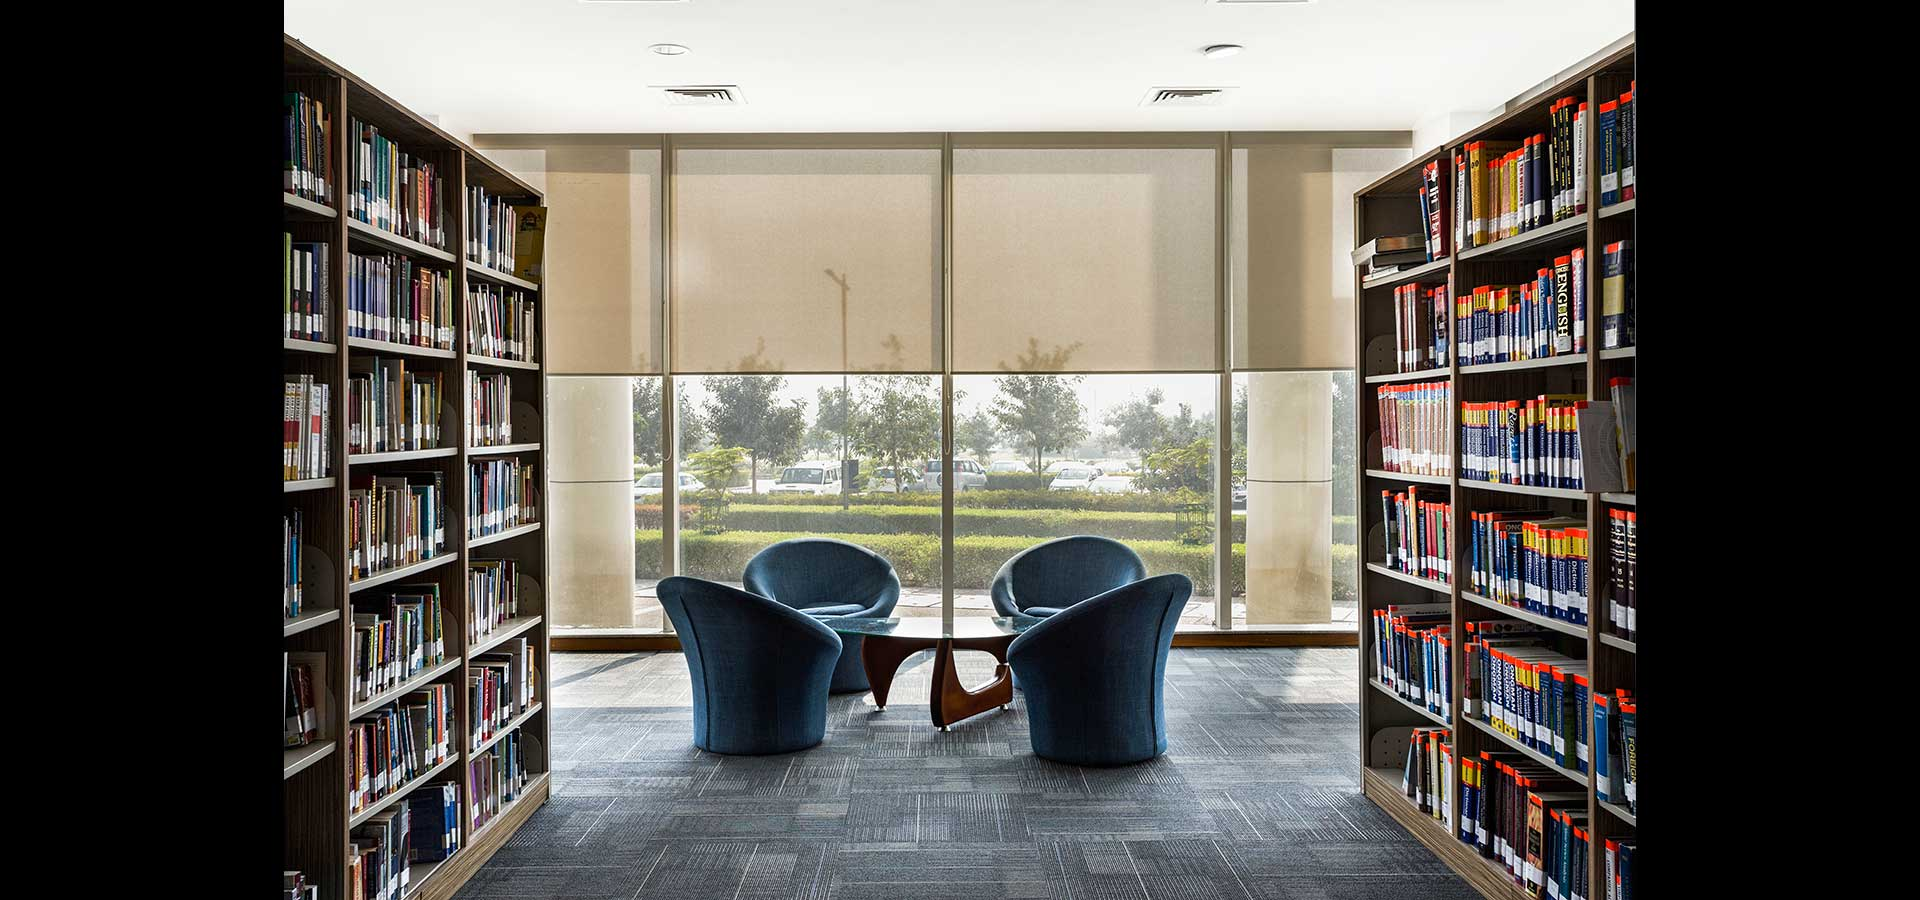 SNU LIBRARY